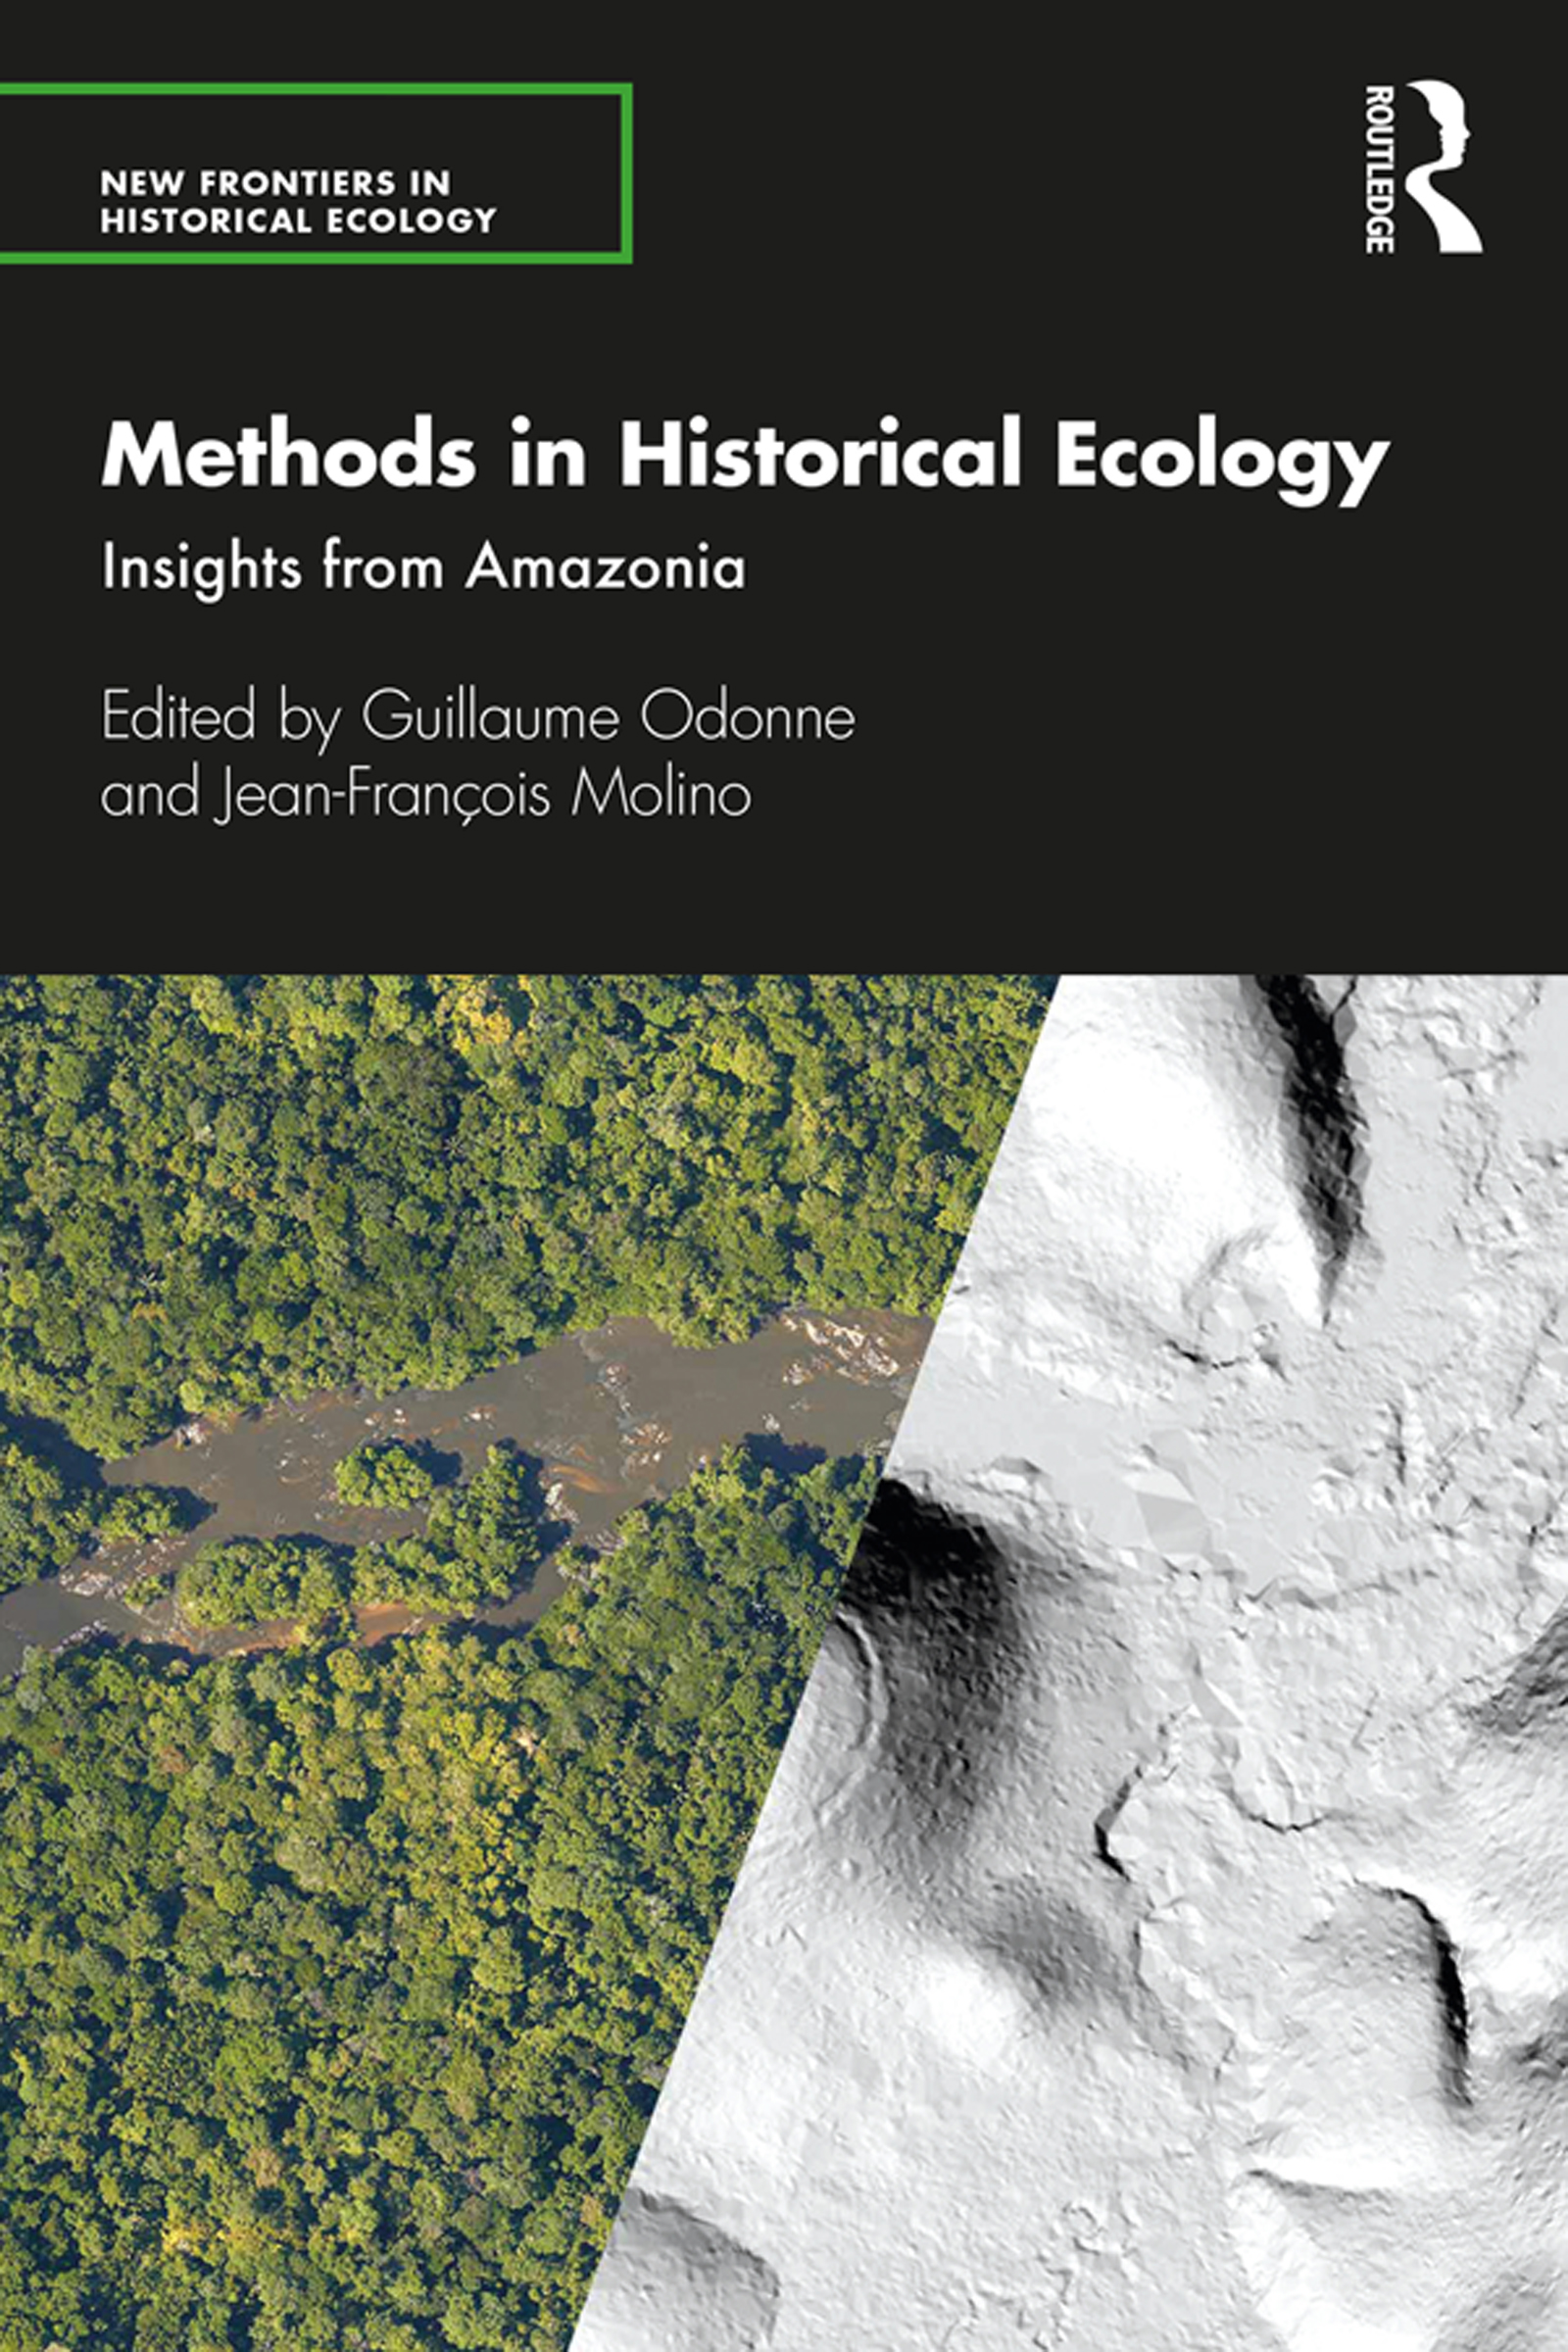 Methods in Historical Ecology